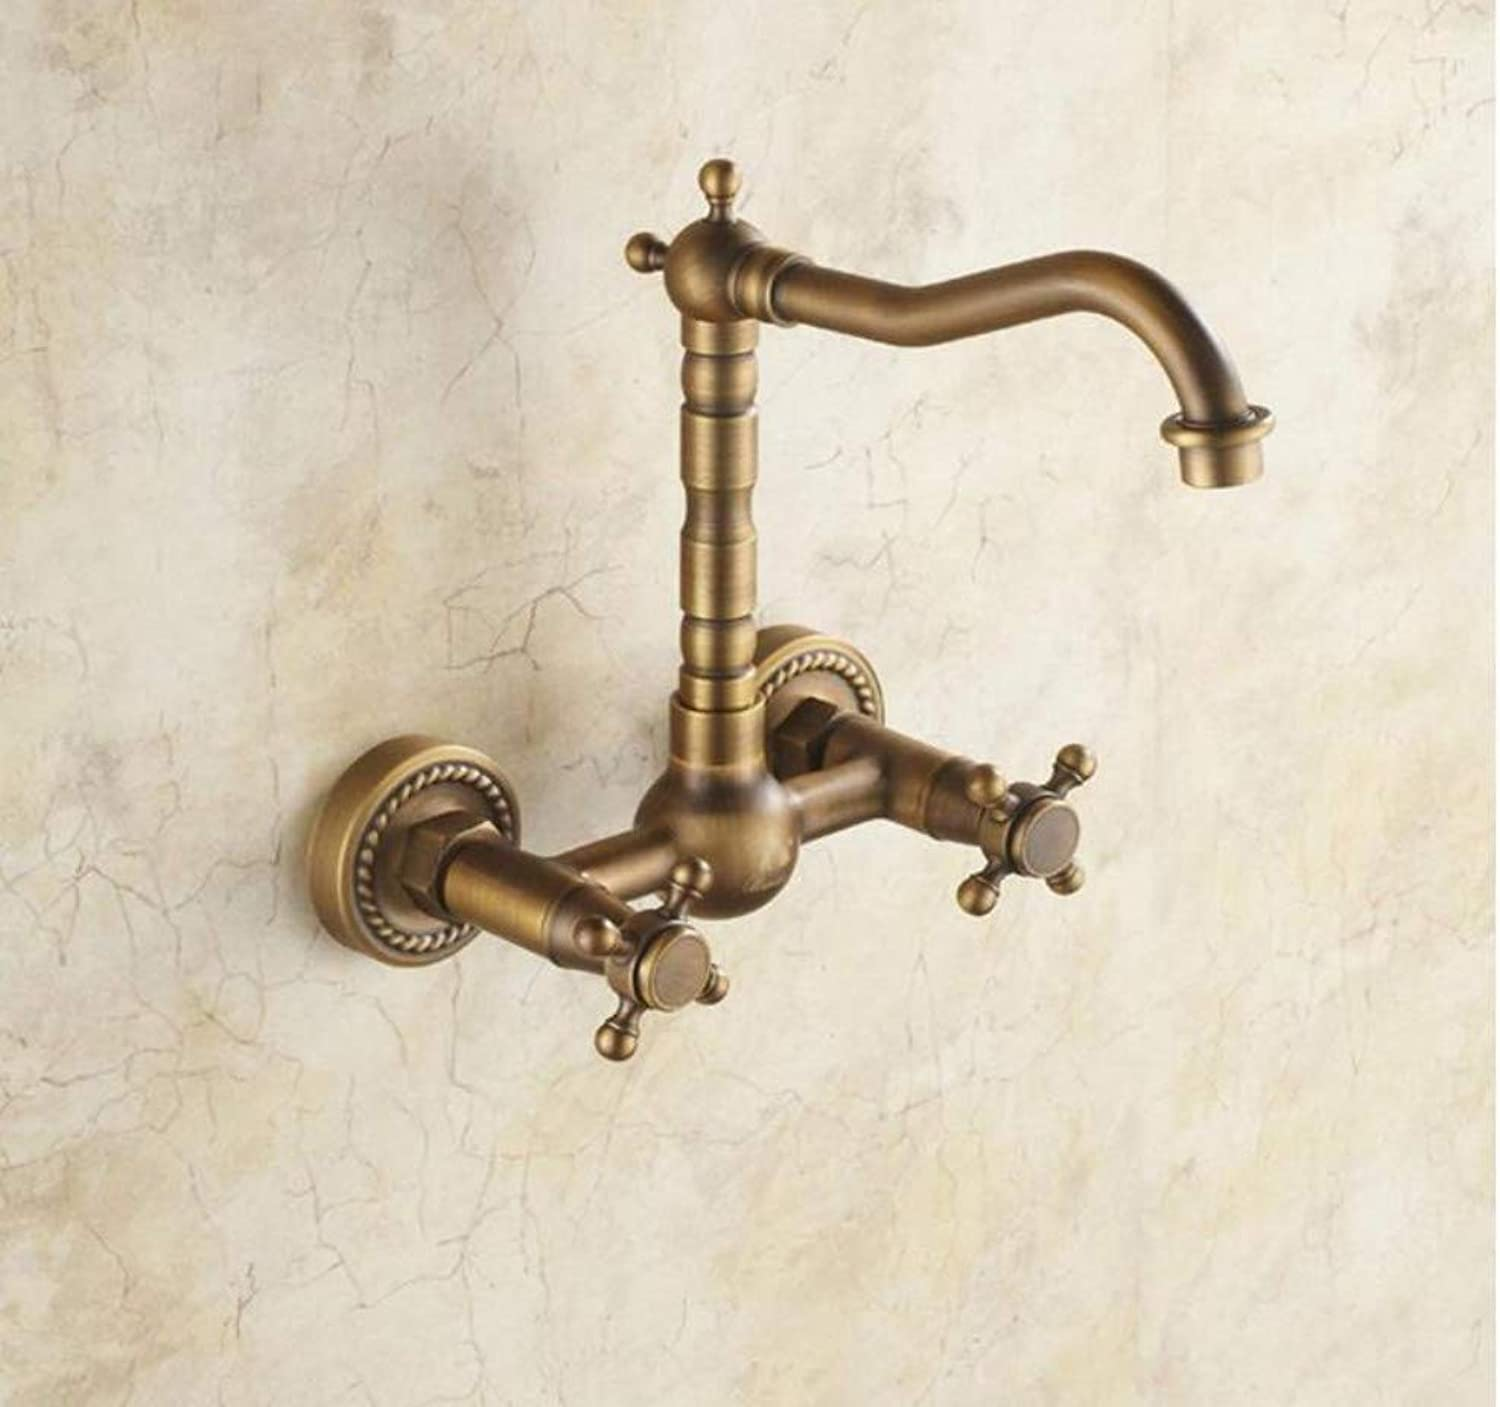 Kitchen Bathroom Mixer Faucet Antique Faucet All-Copper Hot and Cold redation Continental Faucet Antique Faucet